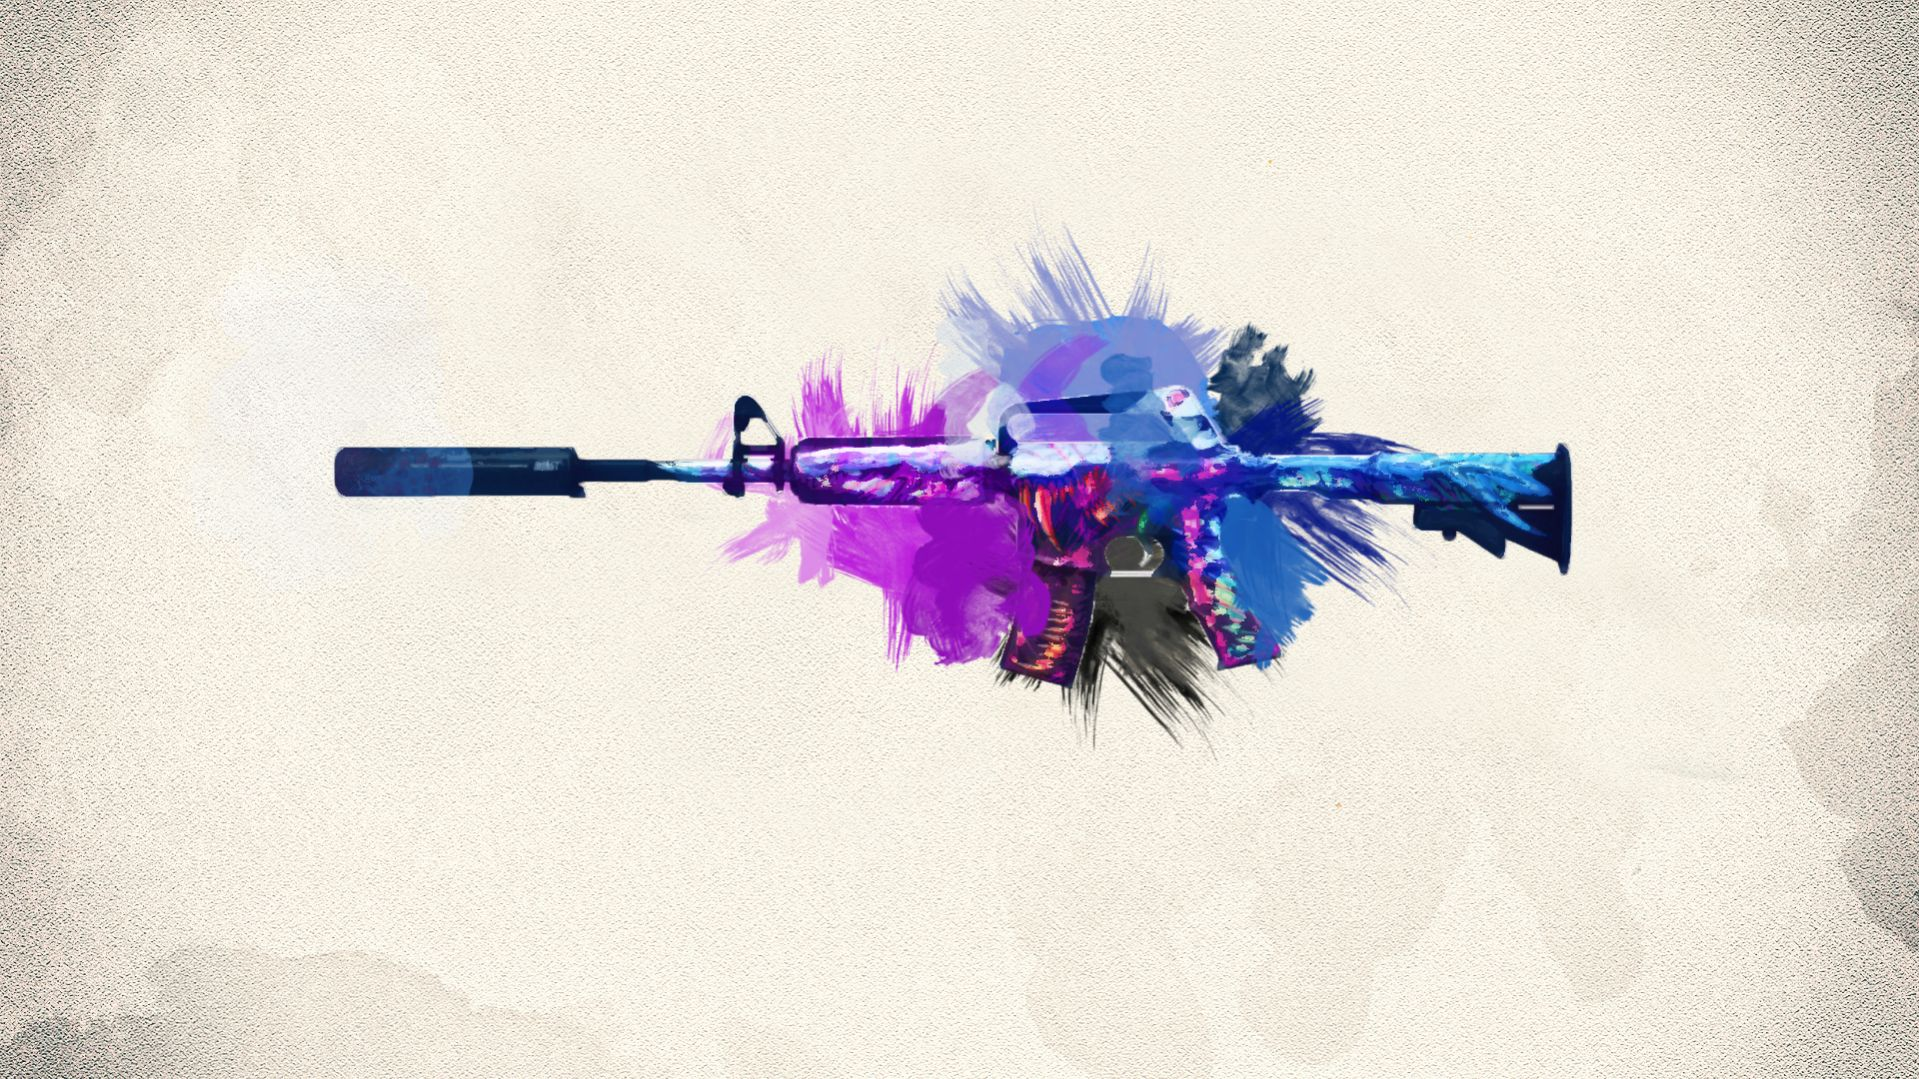 Is there a 1080p Hyper Beast wallpaper anywhere GlobalOffensive 1919x1079